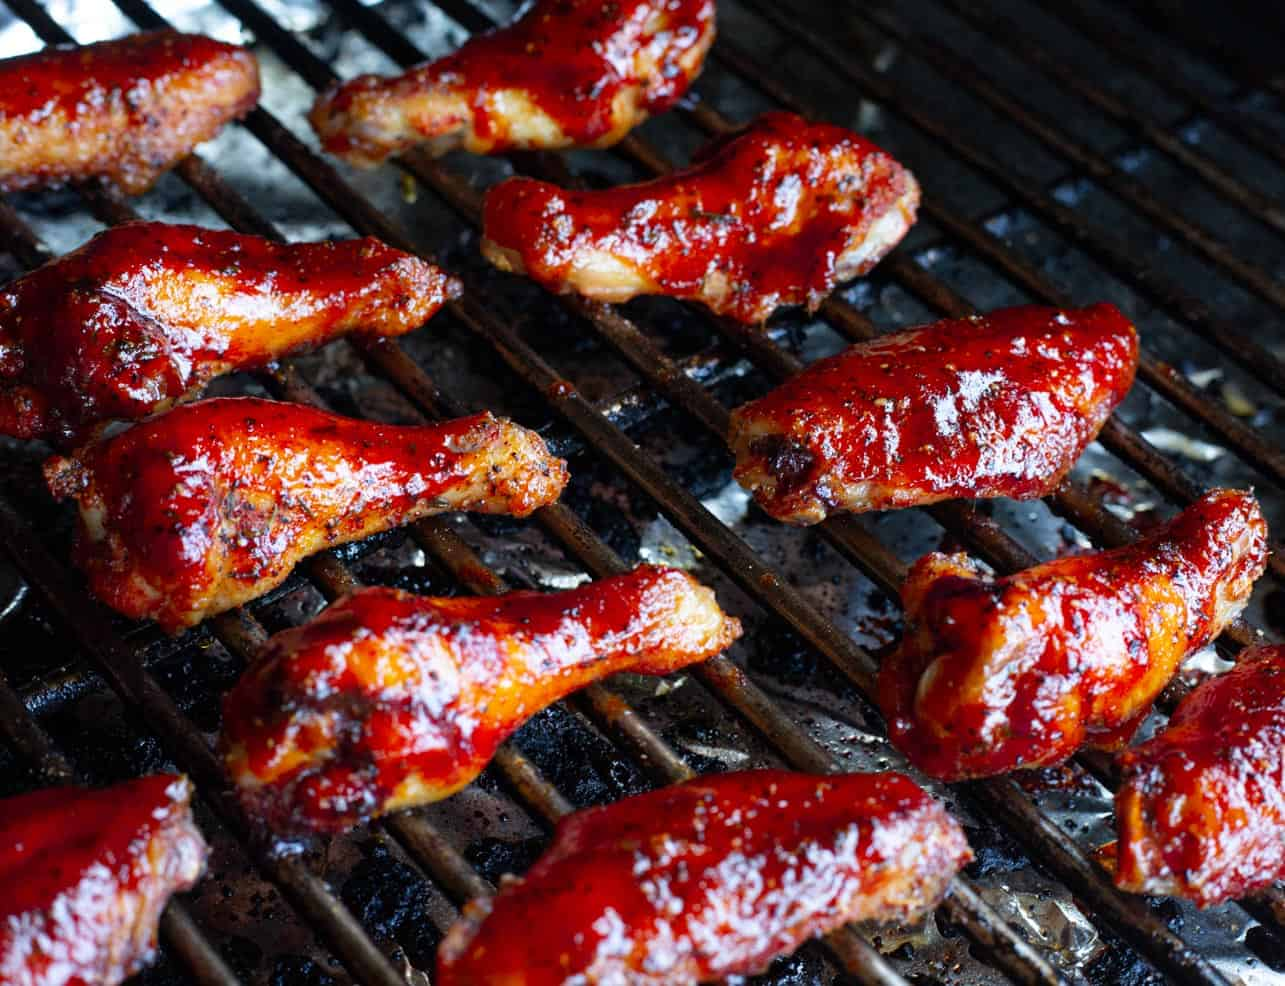 Smoked strawberry barbecue chicken wings on the grill.